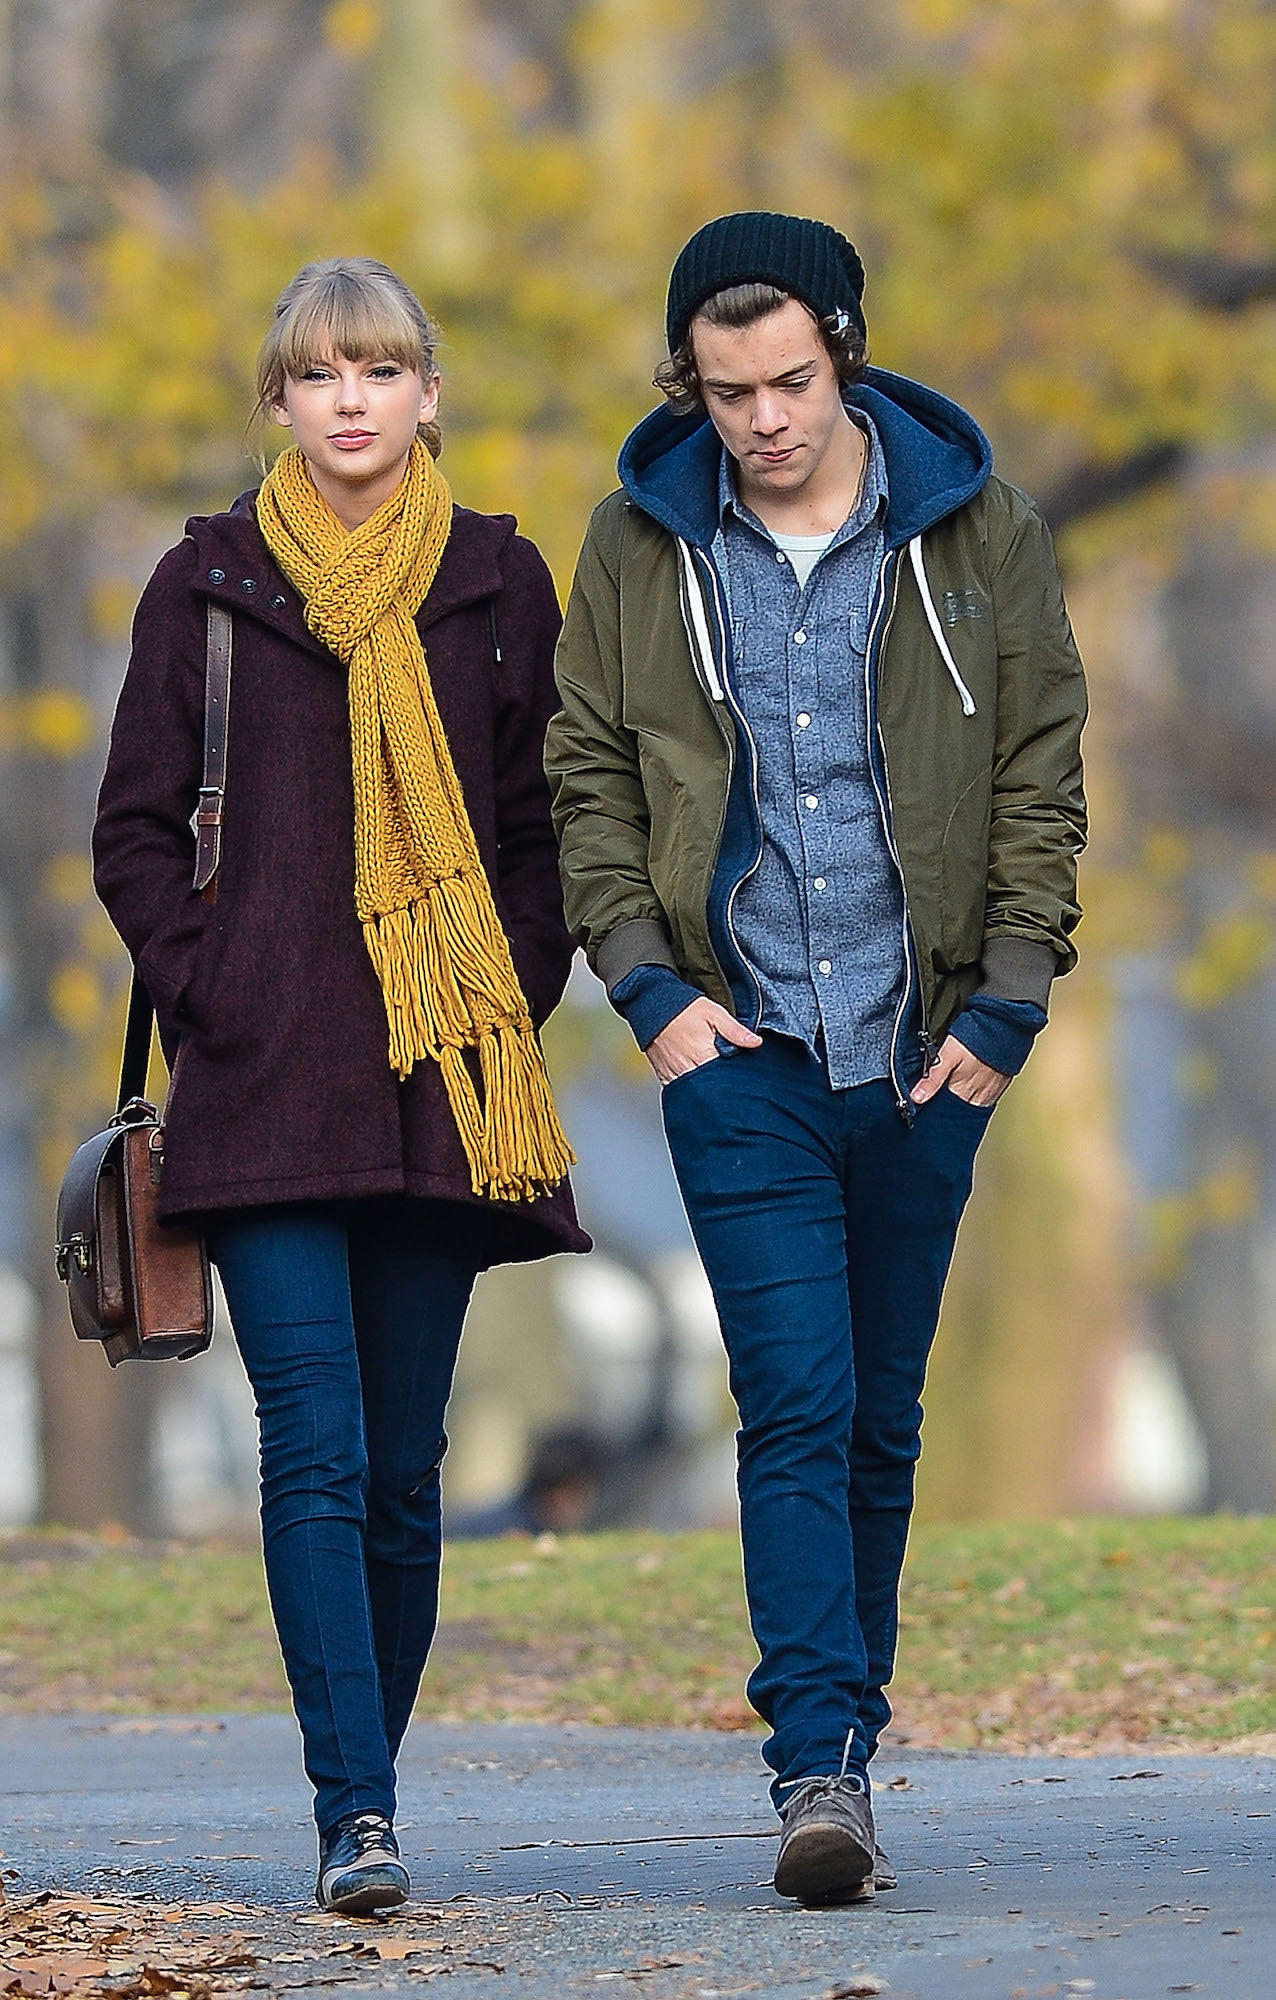 Taylor Swift and Harry Styles walking around Central Park, December 02, 2012.